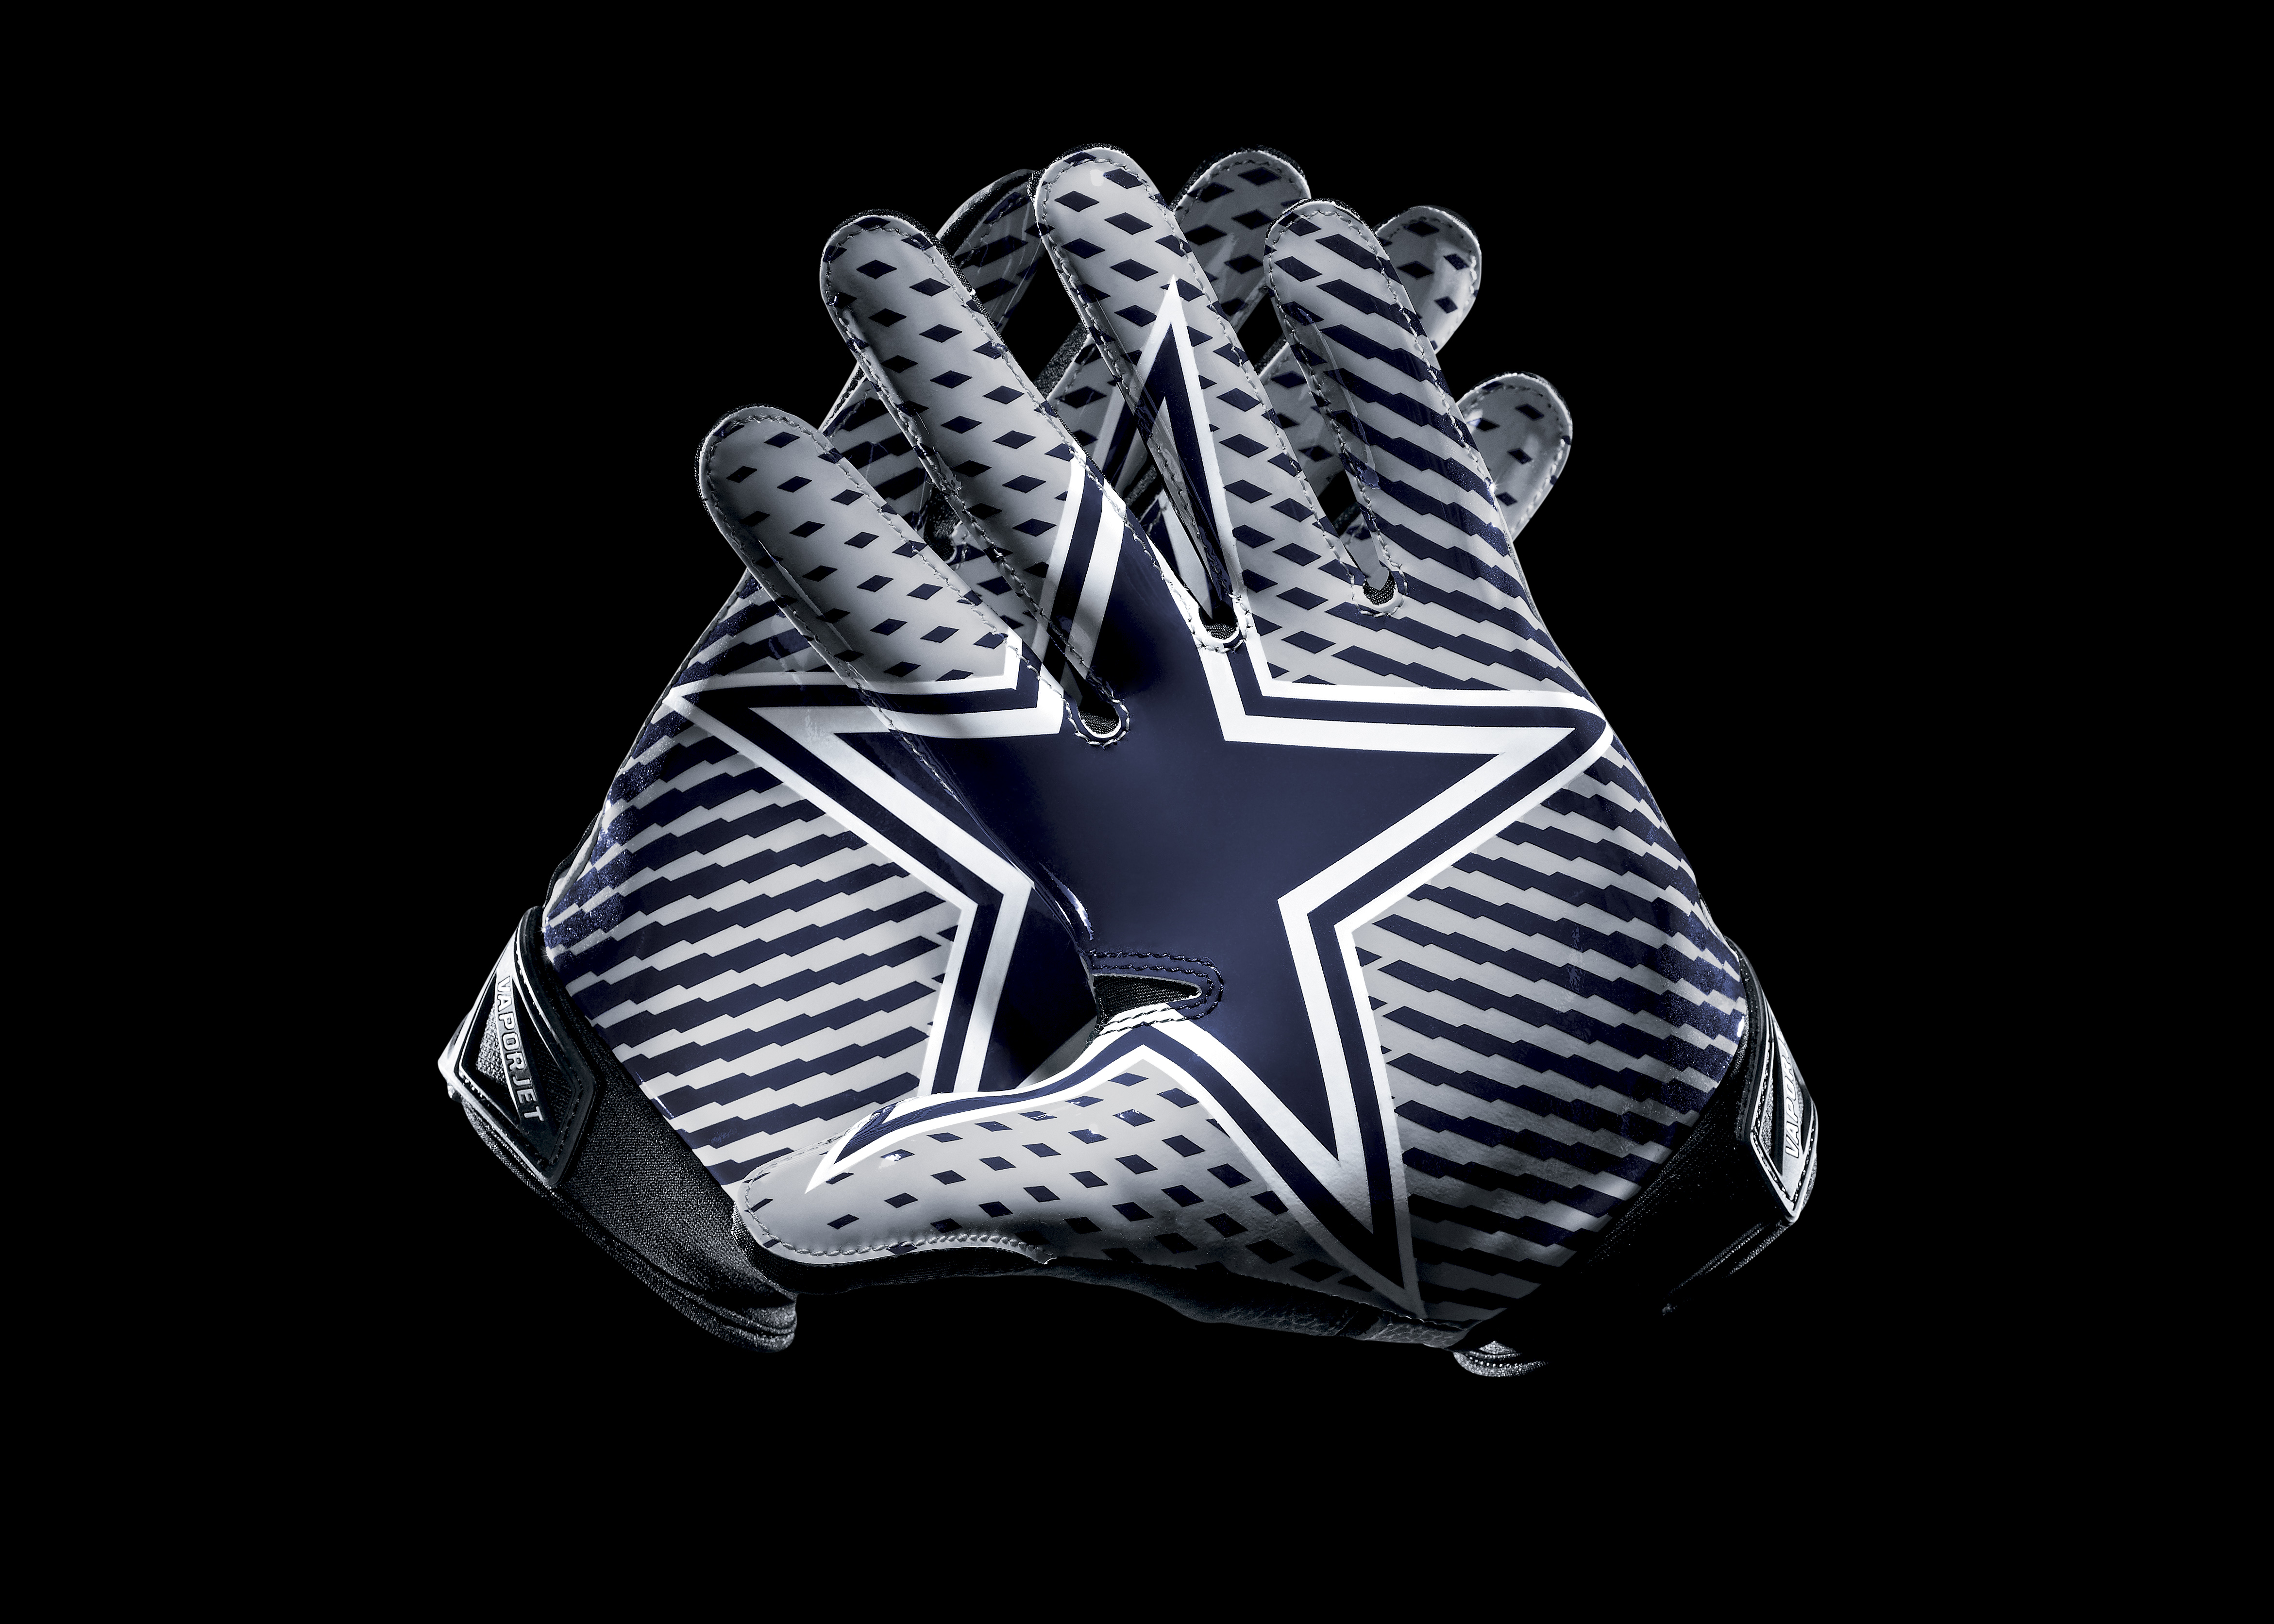 Dallas Cowboys 4k Ultra HD Wallpaper And Background Image